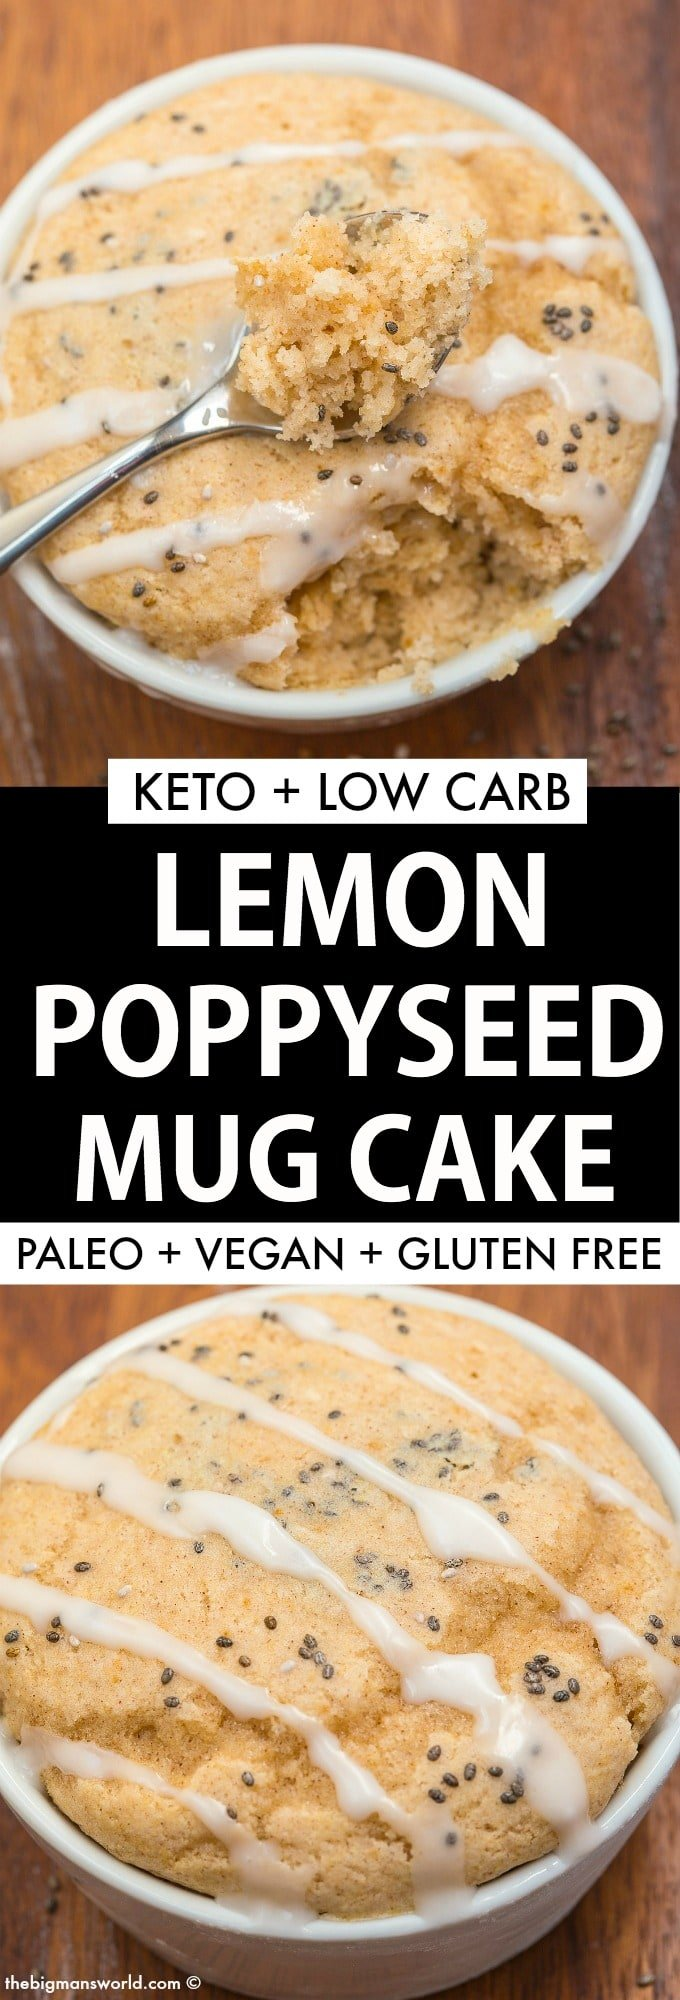 Keto Lemon Poppy Seed Mug Cake Muffin